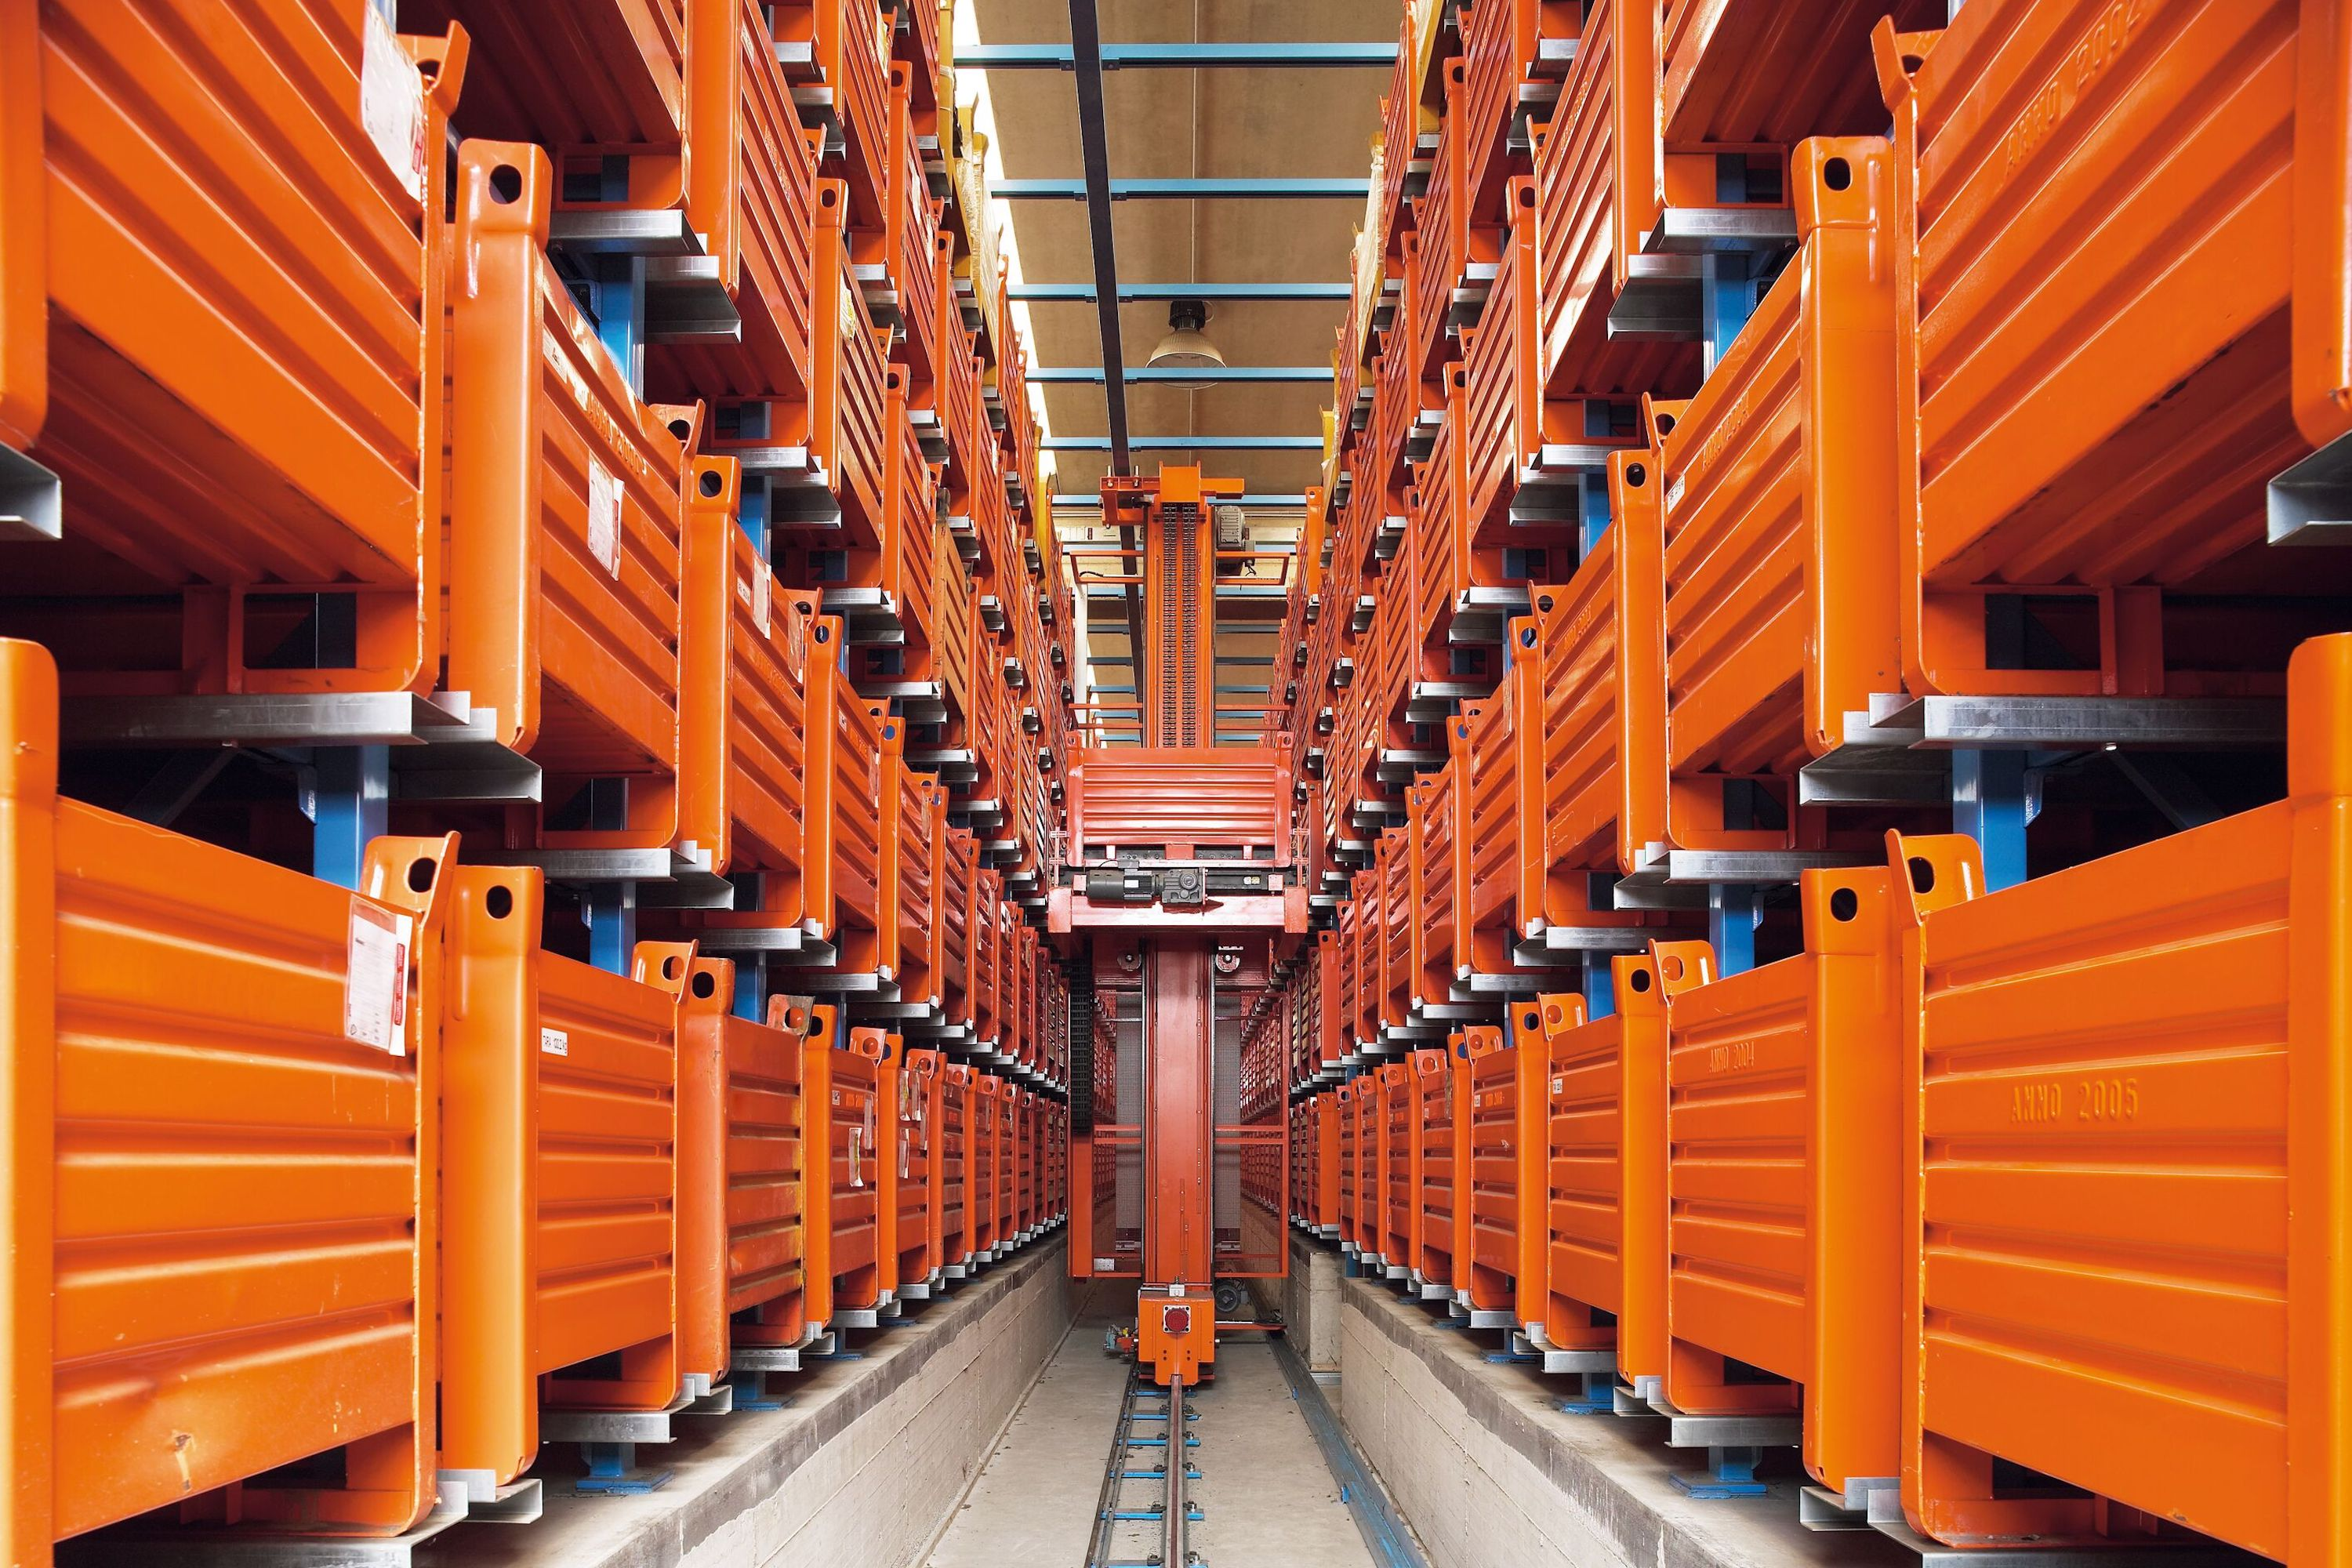 Full fixed automation: Automated Storage & Retrieval System (AS/RS), automated sortation